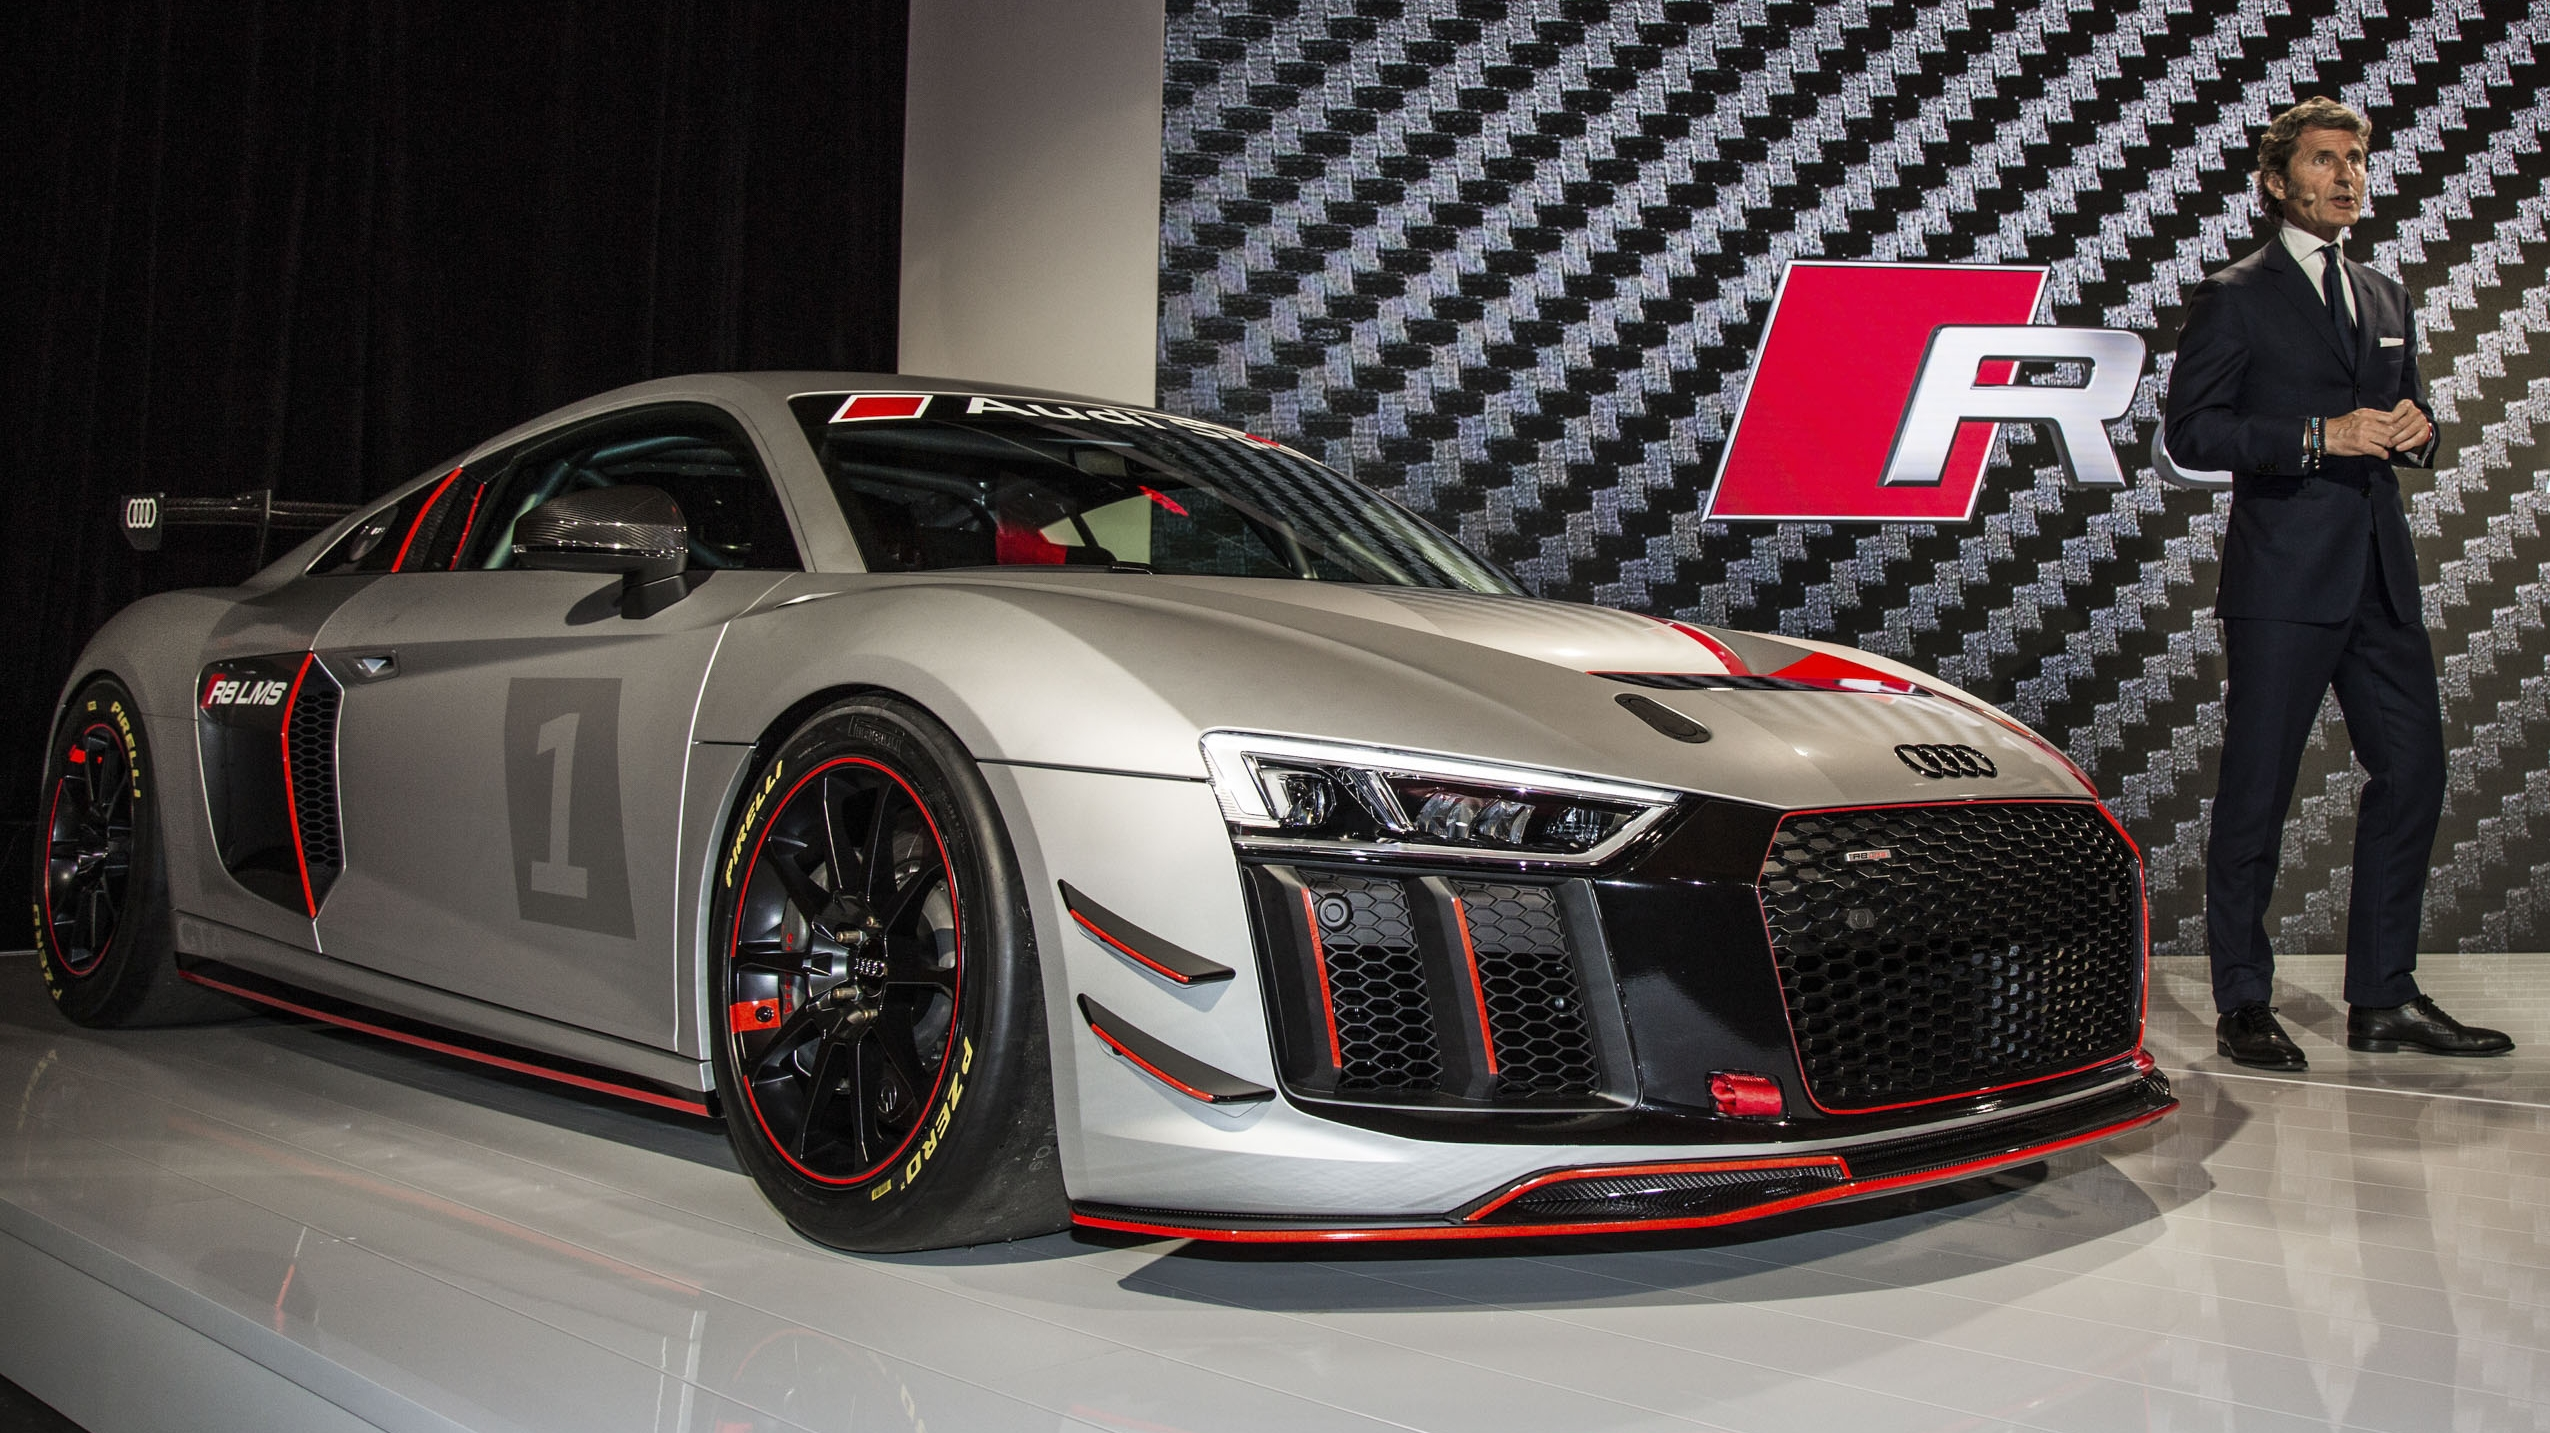 Awesome 2017 Audi R8 LMS GT4 | Top Speed. »